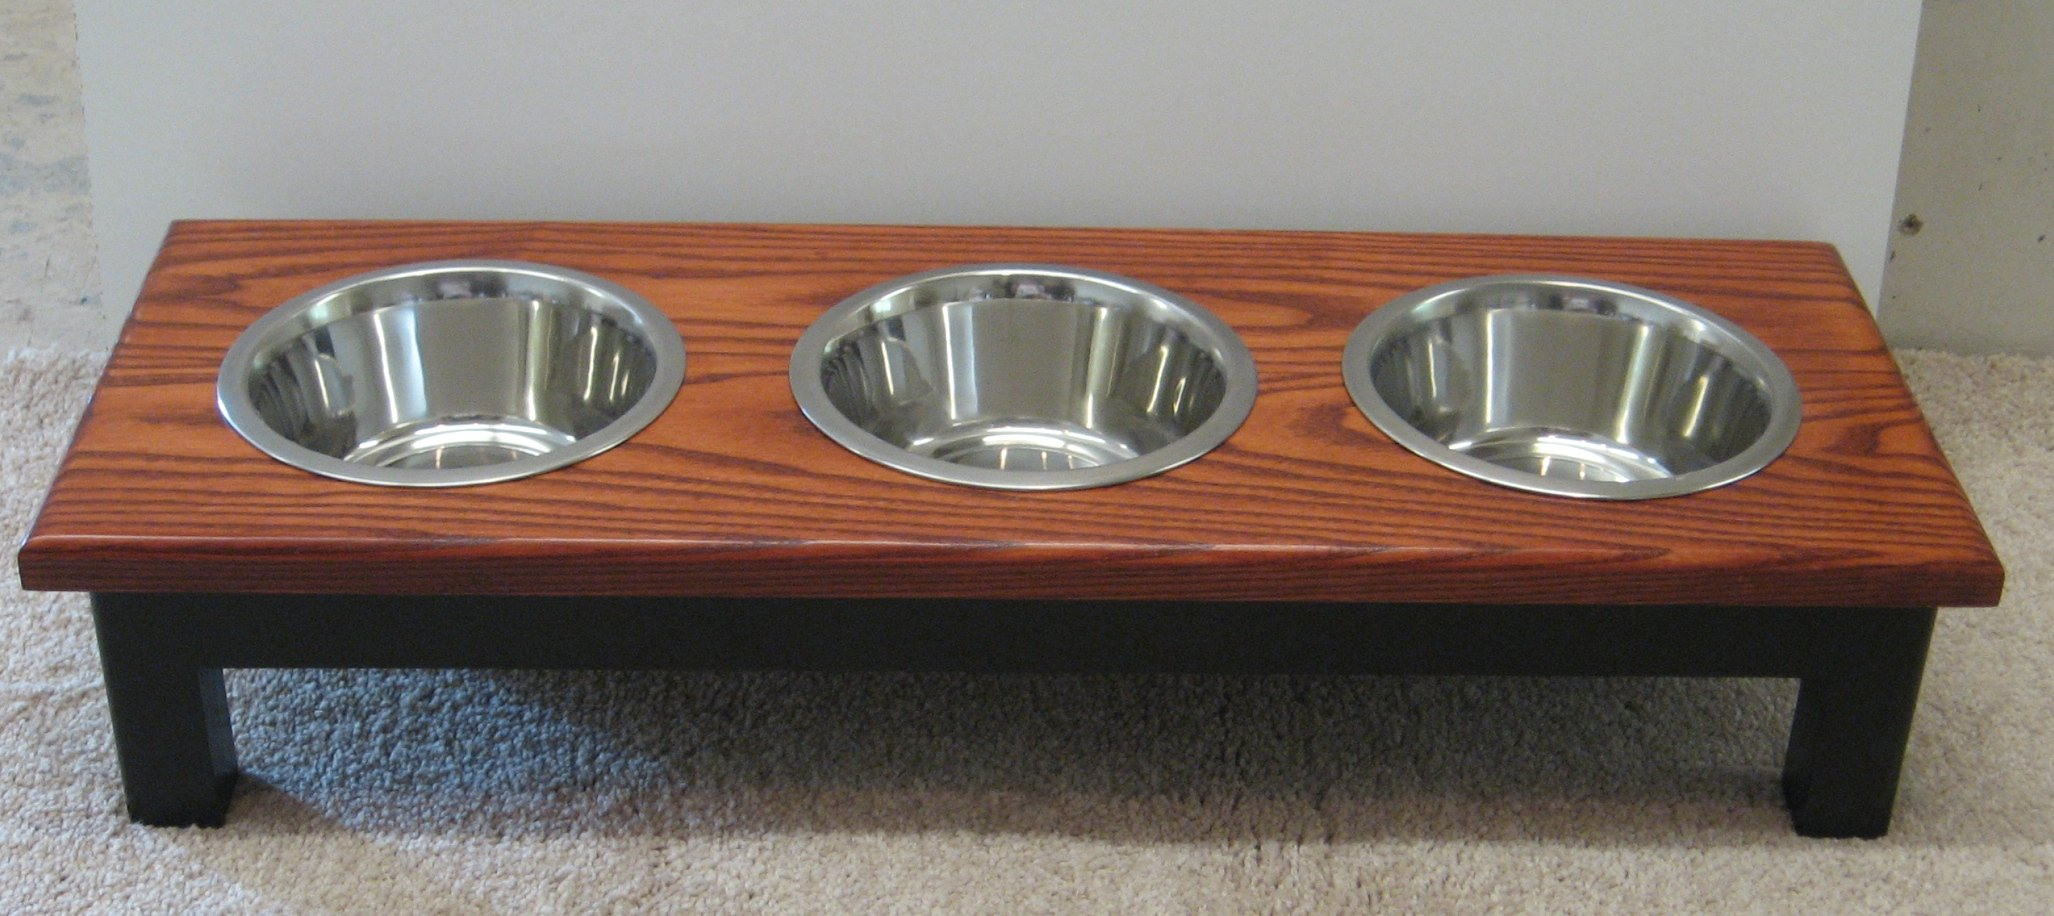 Classic Pet Beds 3-Bowl Traditional Style Ash Pet Diner, Small, Espresso/Cherry